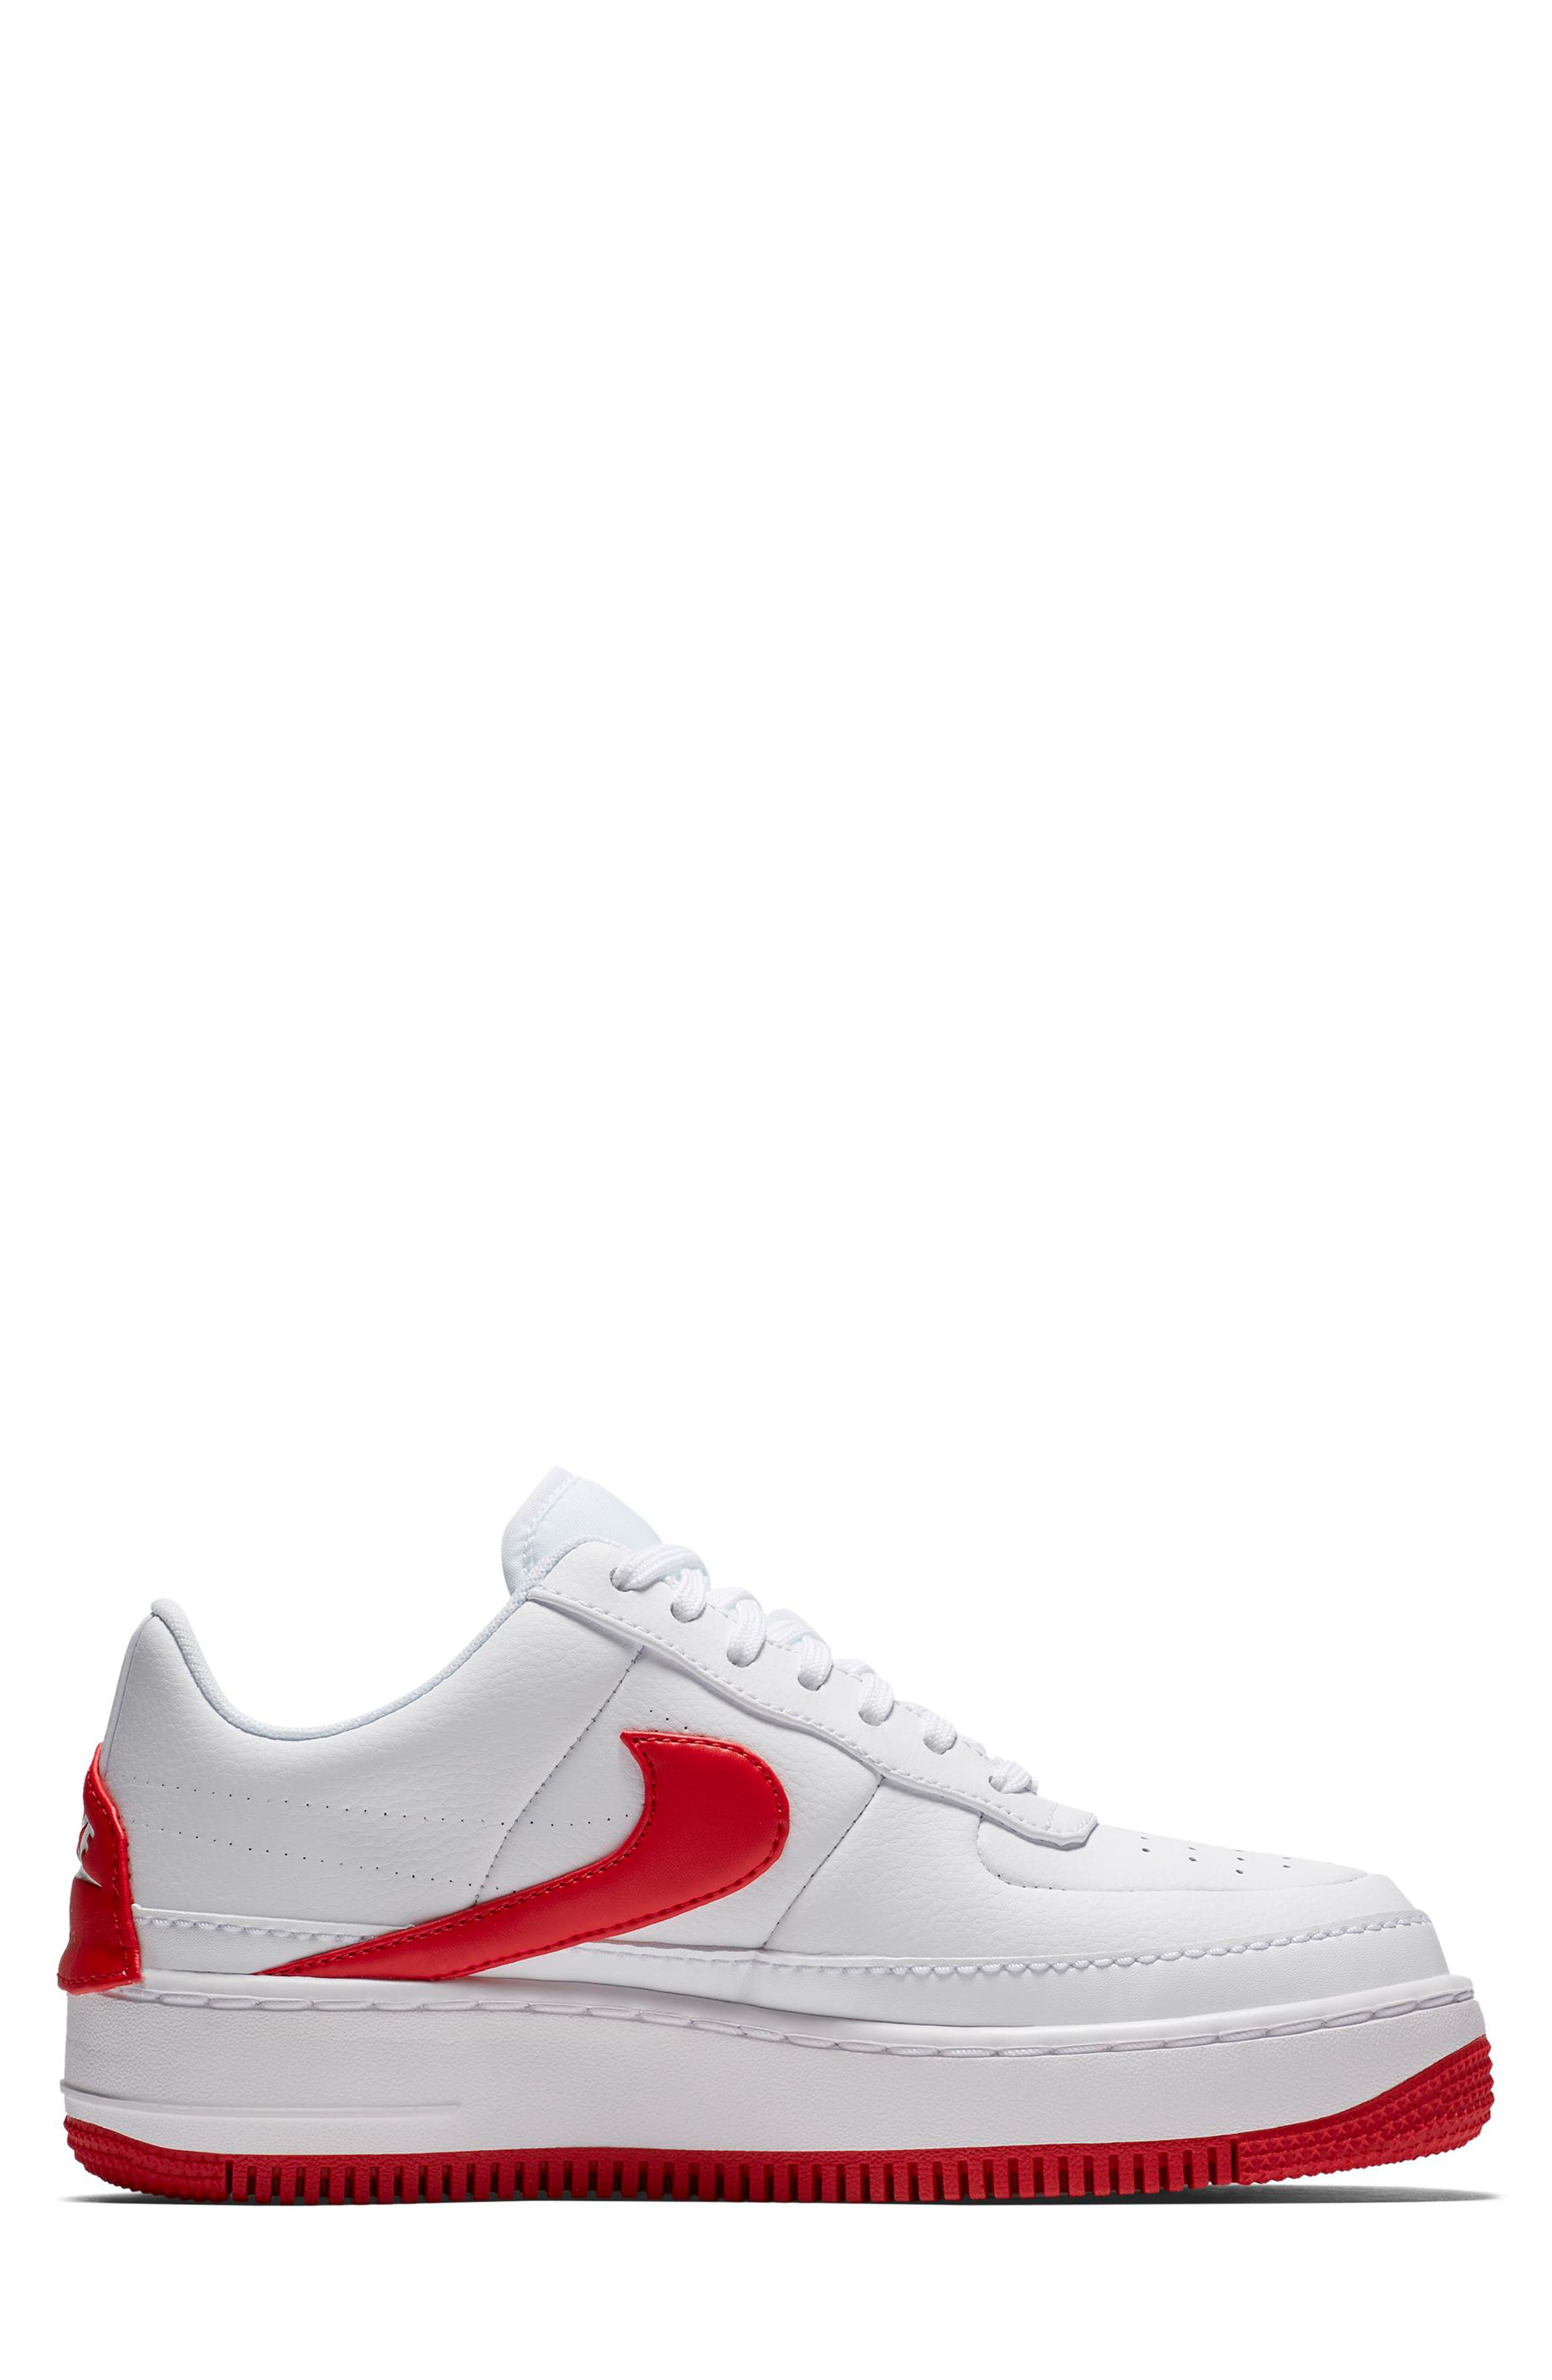 Air Force 1 Jester XX Sneaker,                             Alternate thumbnail 3, color,                             WHITE